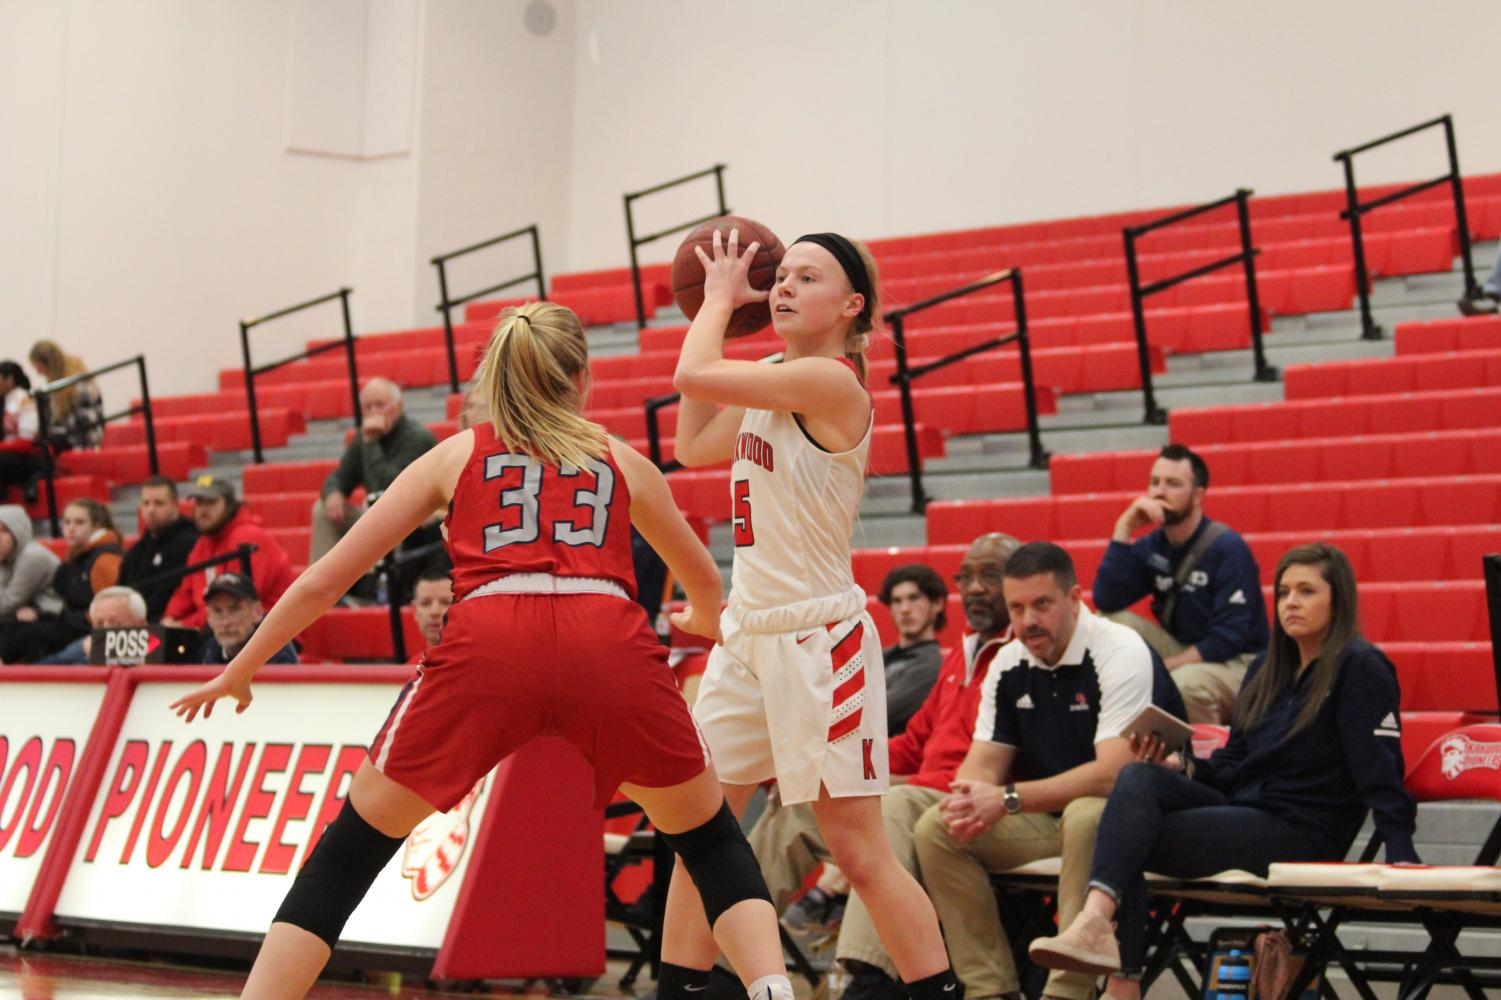 During+a+varsity+girls%E2%80%99+basketball+game%2C+Olivia+Giardino%2C+junior%2C+looks+to+find+an+open+teammate+Feb.+12.